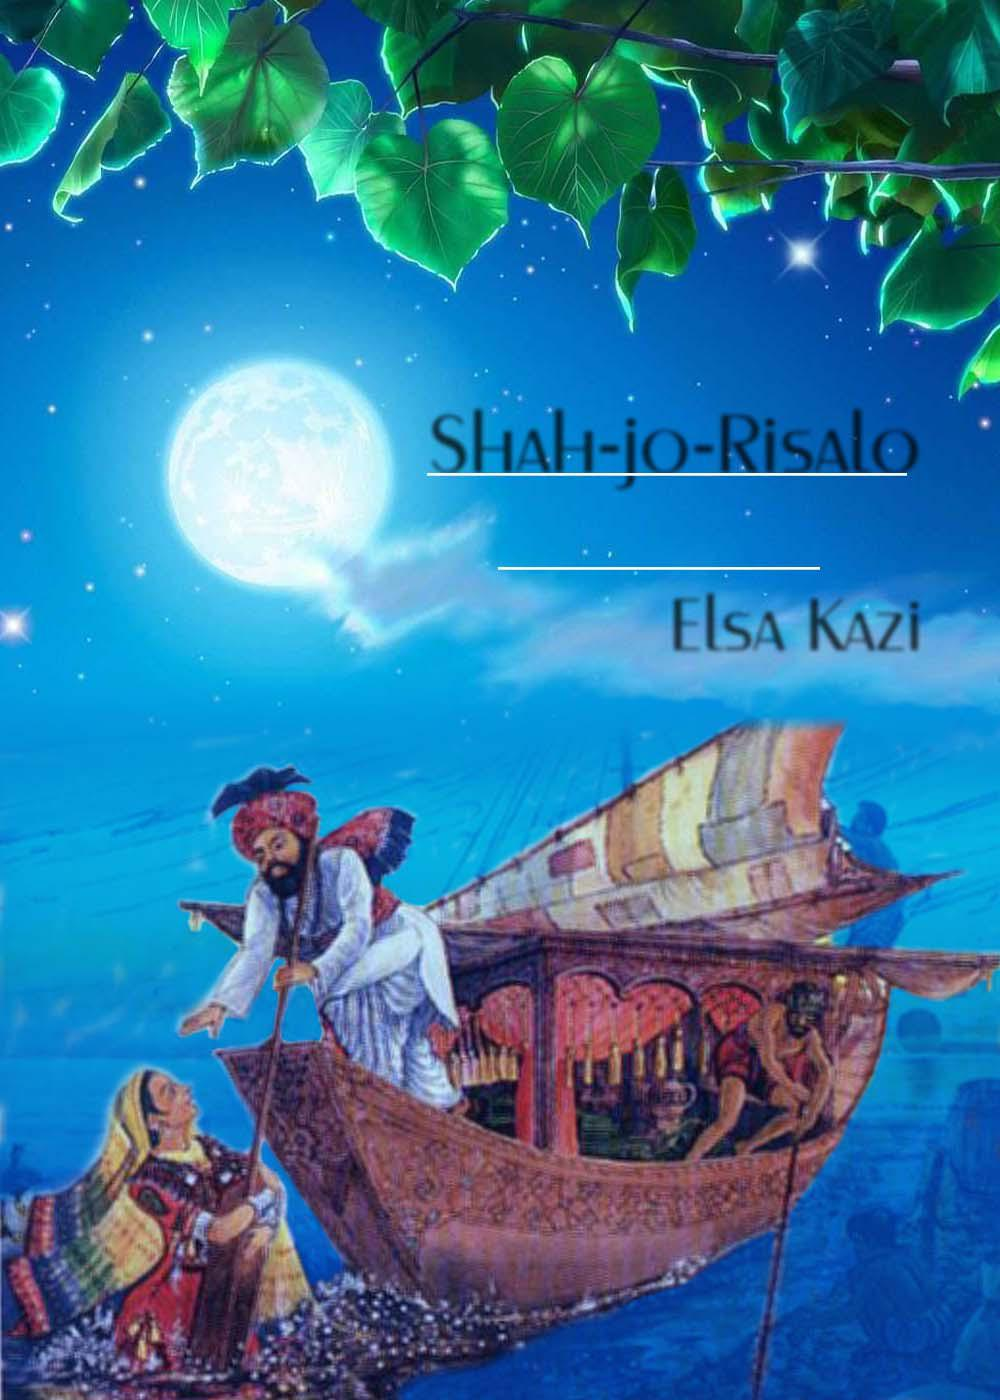 shah jo risalo in sindhi free download